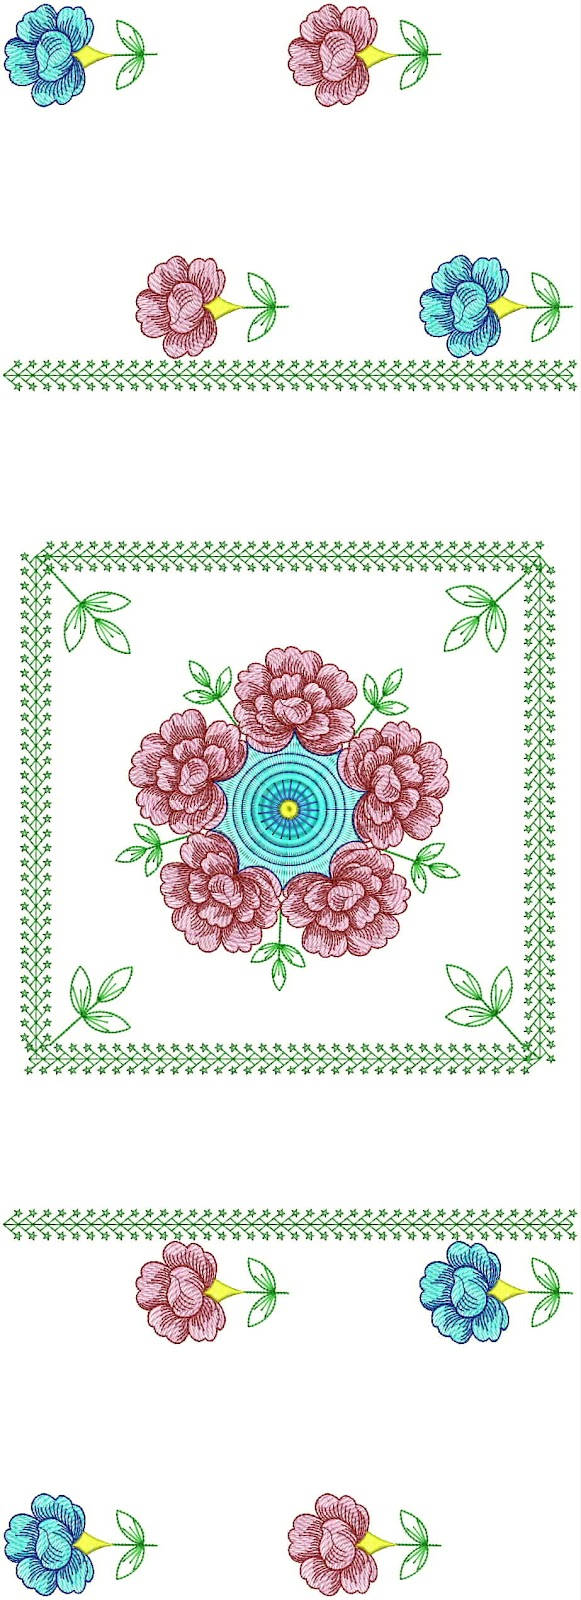 Embdesigntube table clothing machine embroidery designs